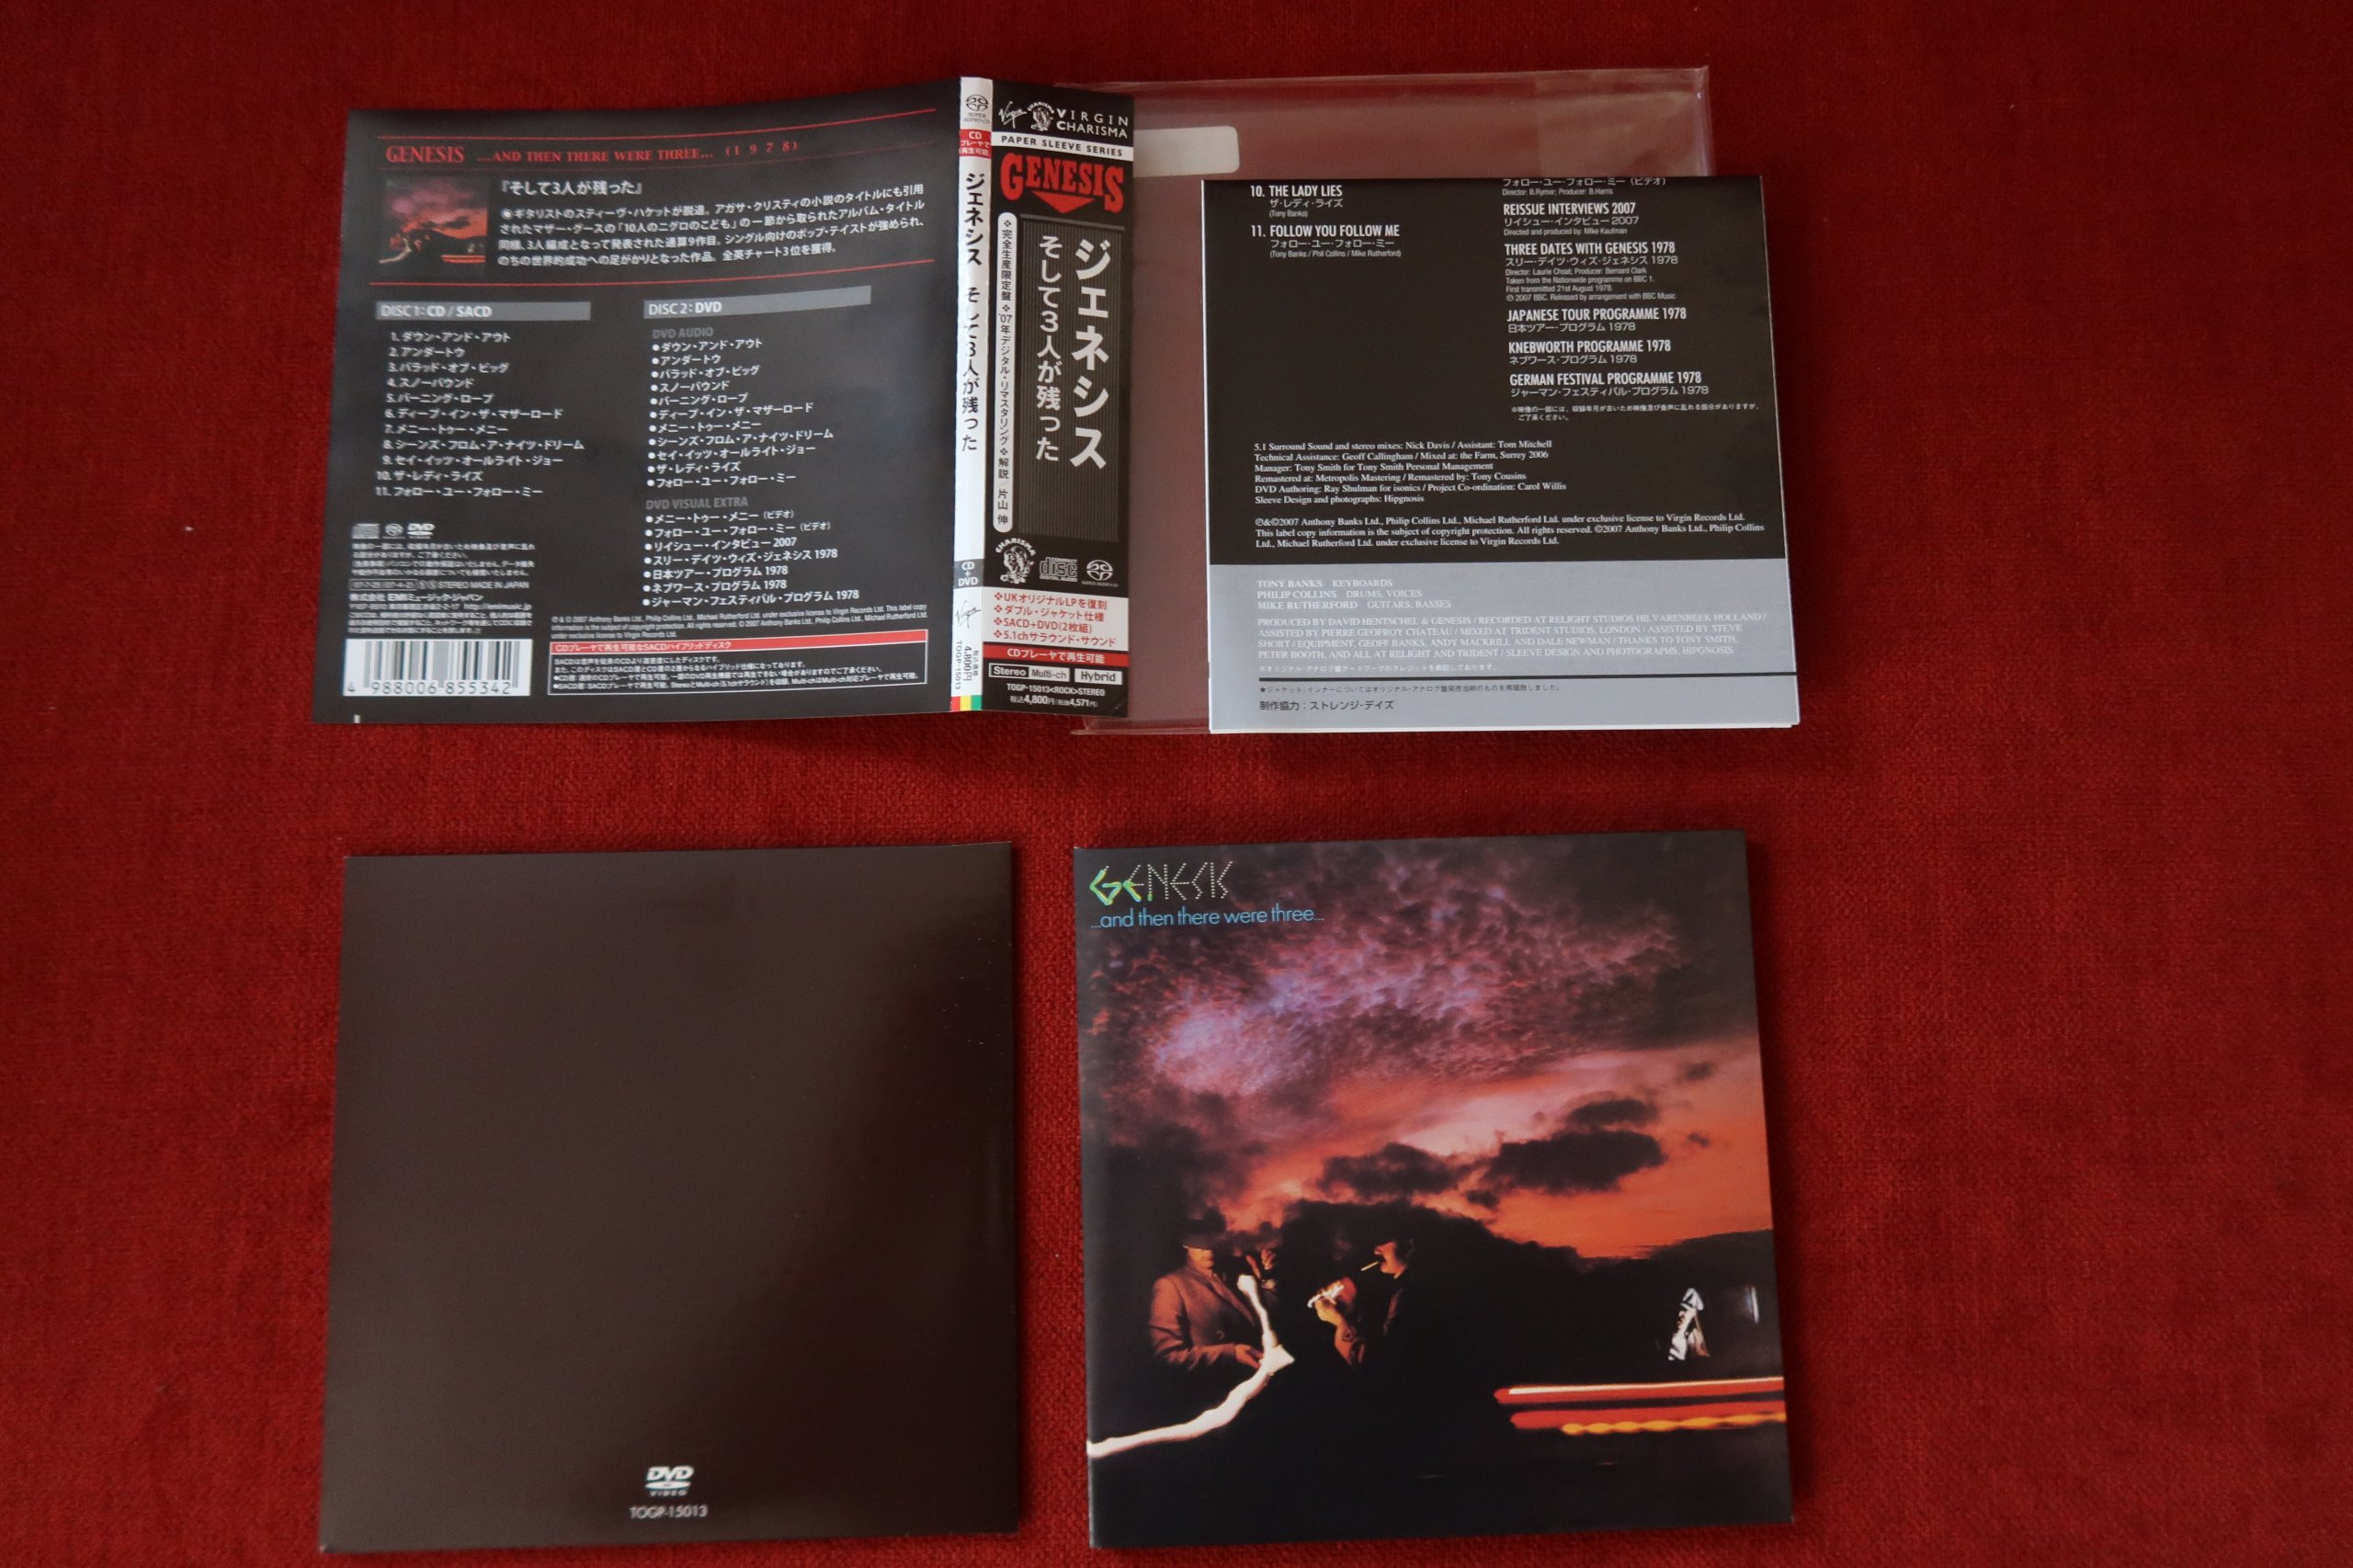 GENESIS And Then There Japan mini lp CD/SACD+DVD-A